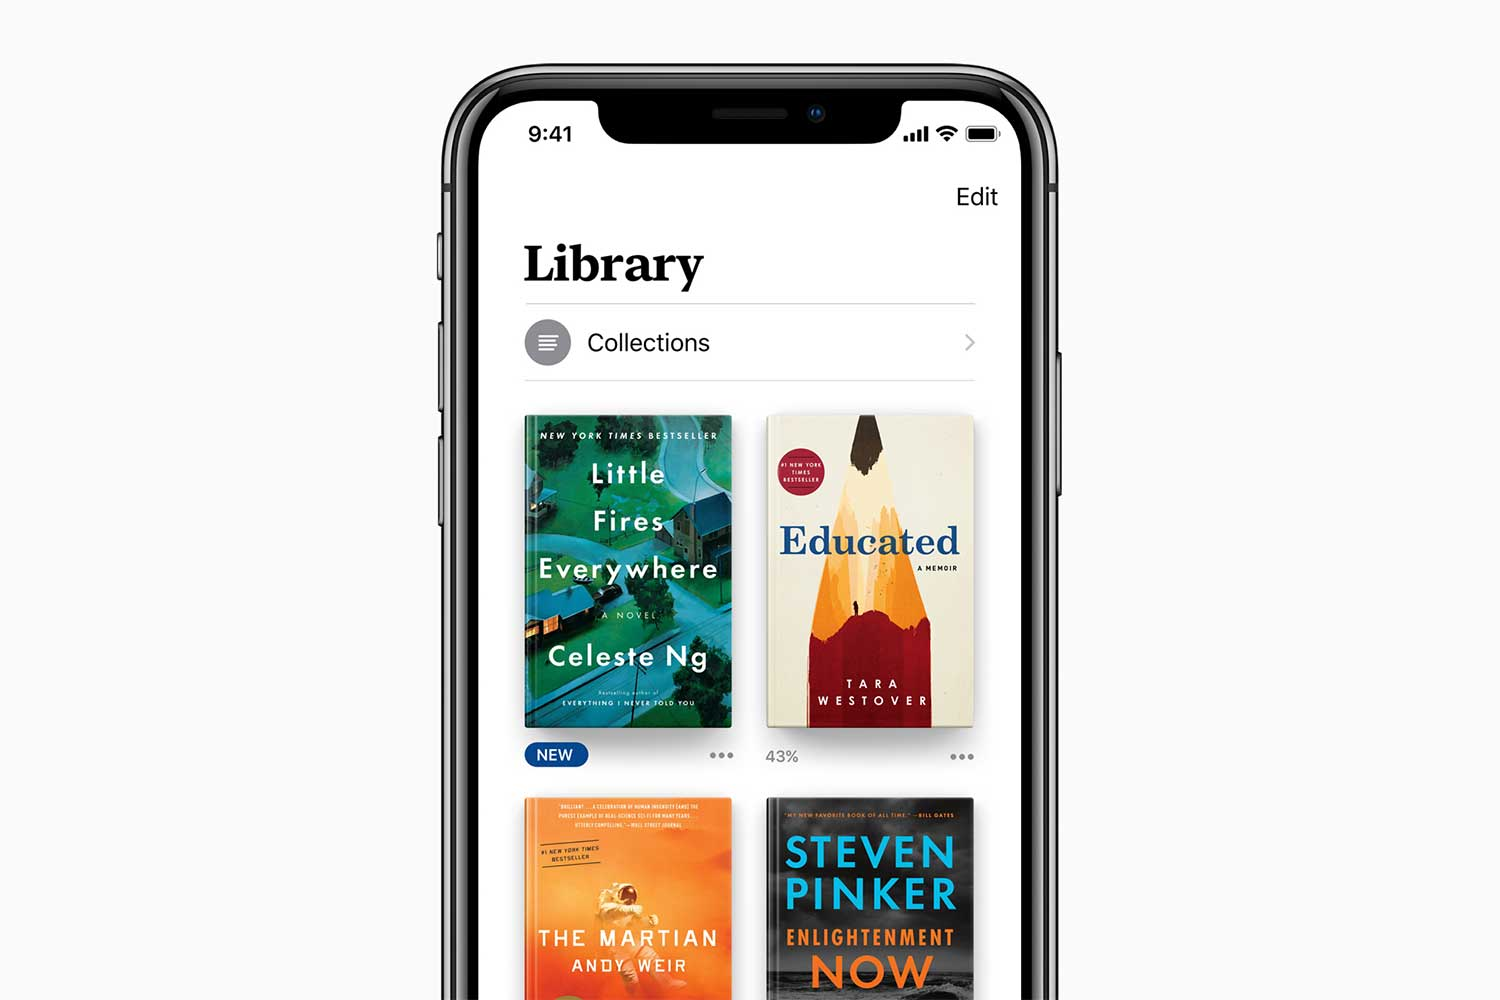 Apple updated its affiliate program for authors Apple Books